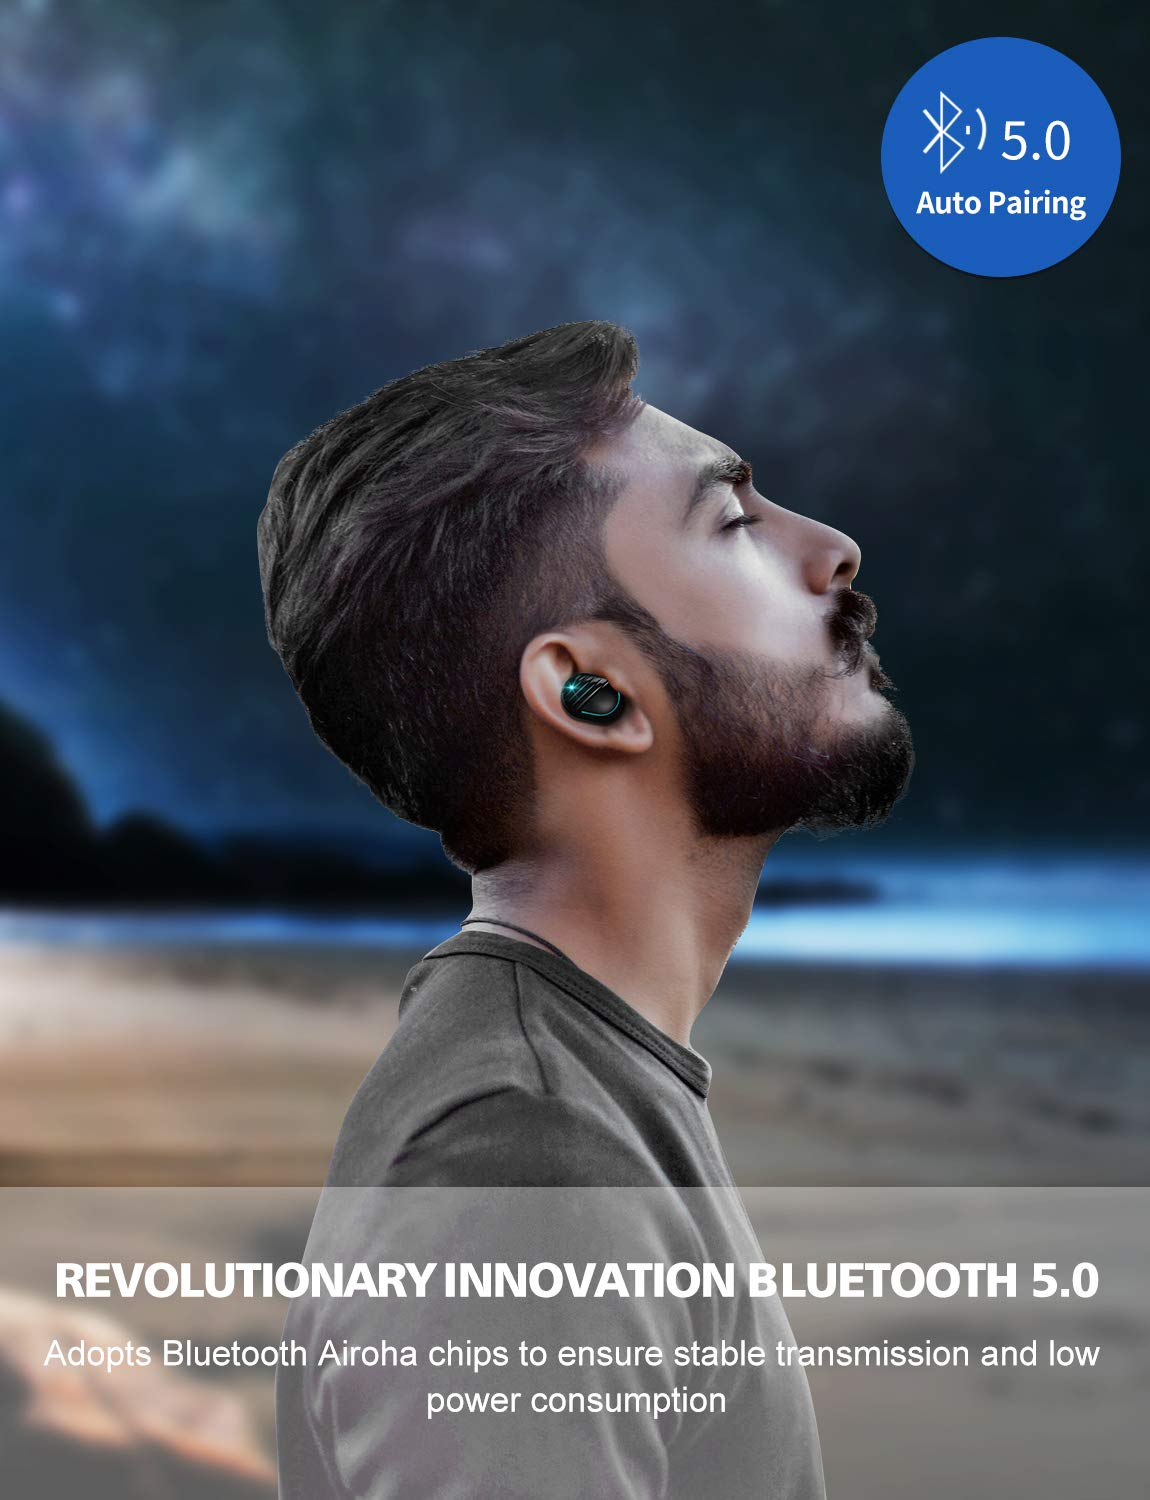 Bluetooth Earbuds, True Wireless Bluetooth 5.0 Headphones with 15 Hours Playtime, Touch Control, Auto Pair, Song Switching, Volume Control, Binaural Mic, in-Ear Mini Earphones by Aimus